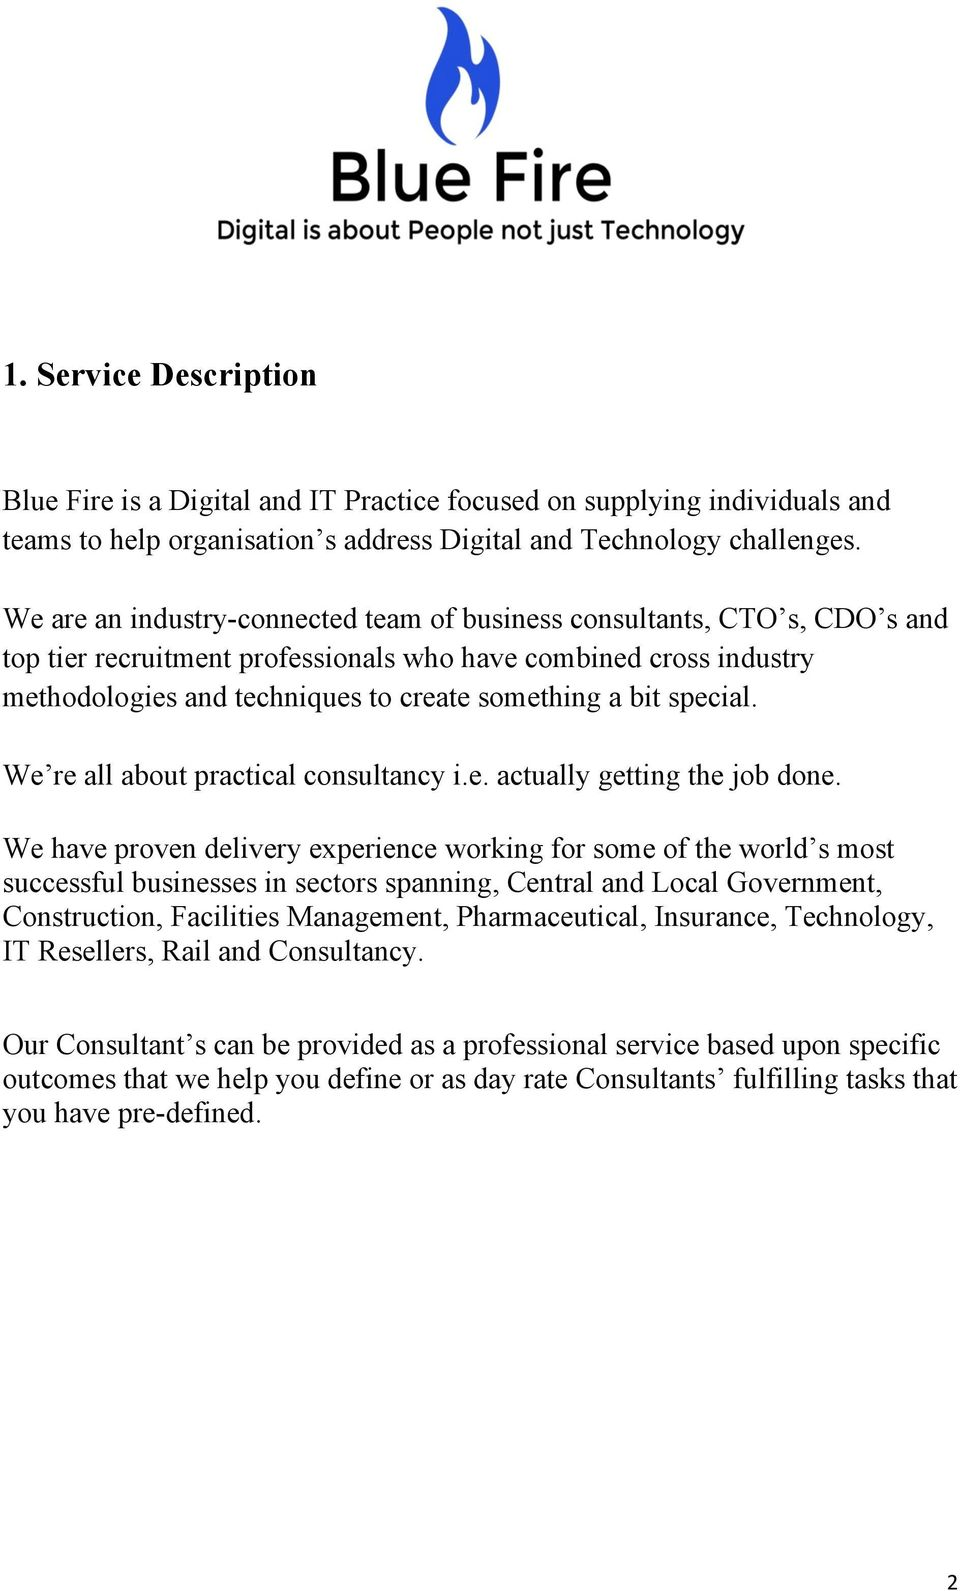 special. We re all about practical consultancy i.e. actually getting the job done.